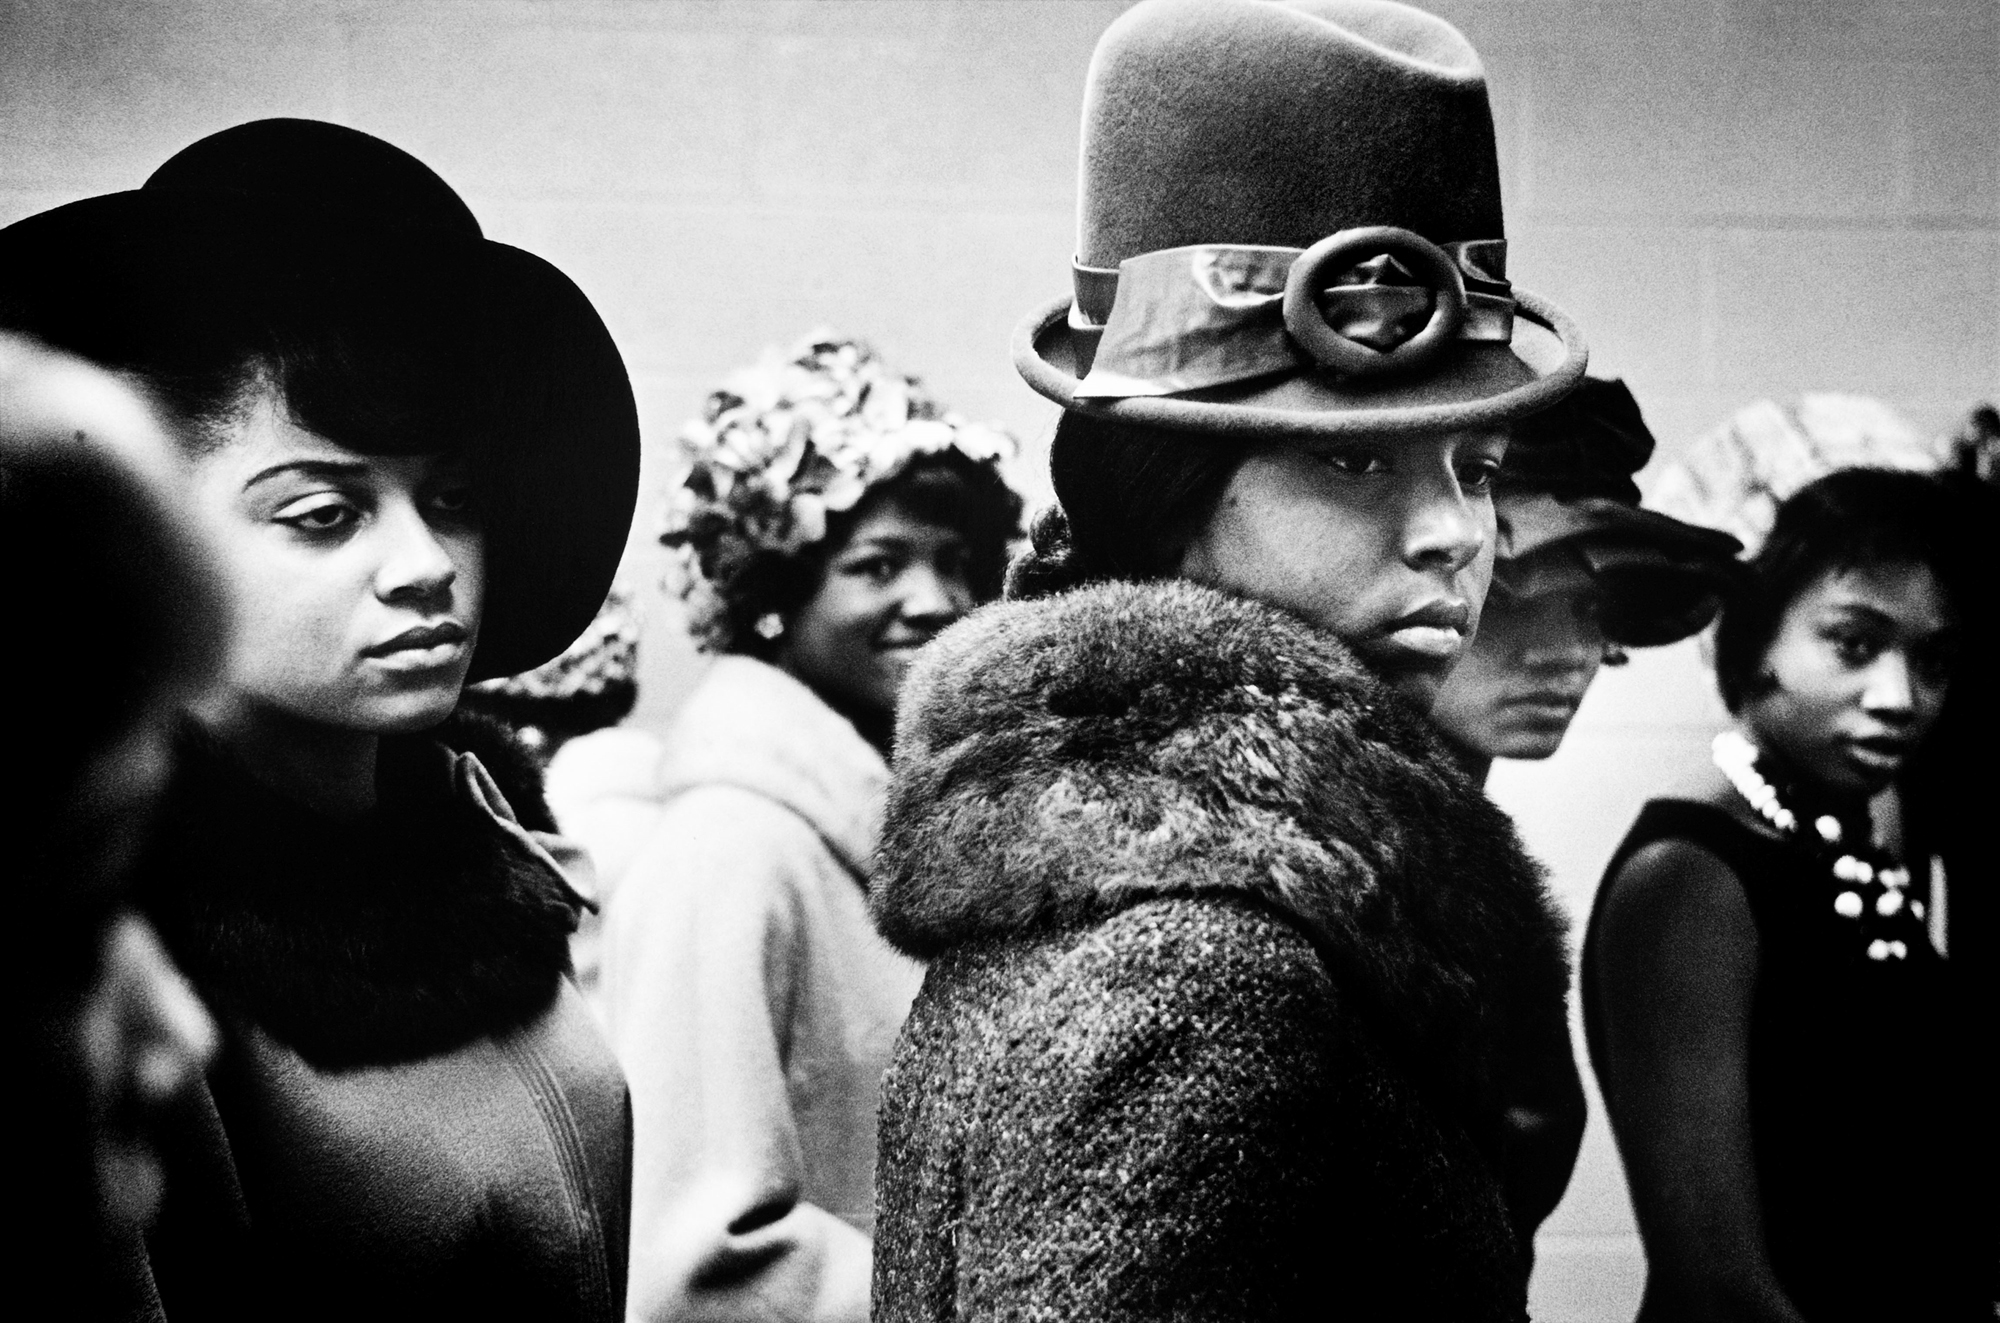 Leonard Freed, Harlem fashion show, 1963 © Leonard Freed/Magnum Photos